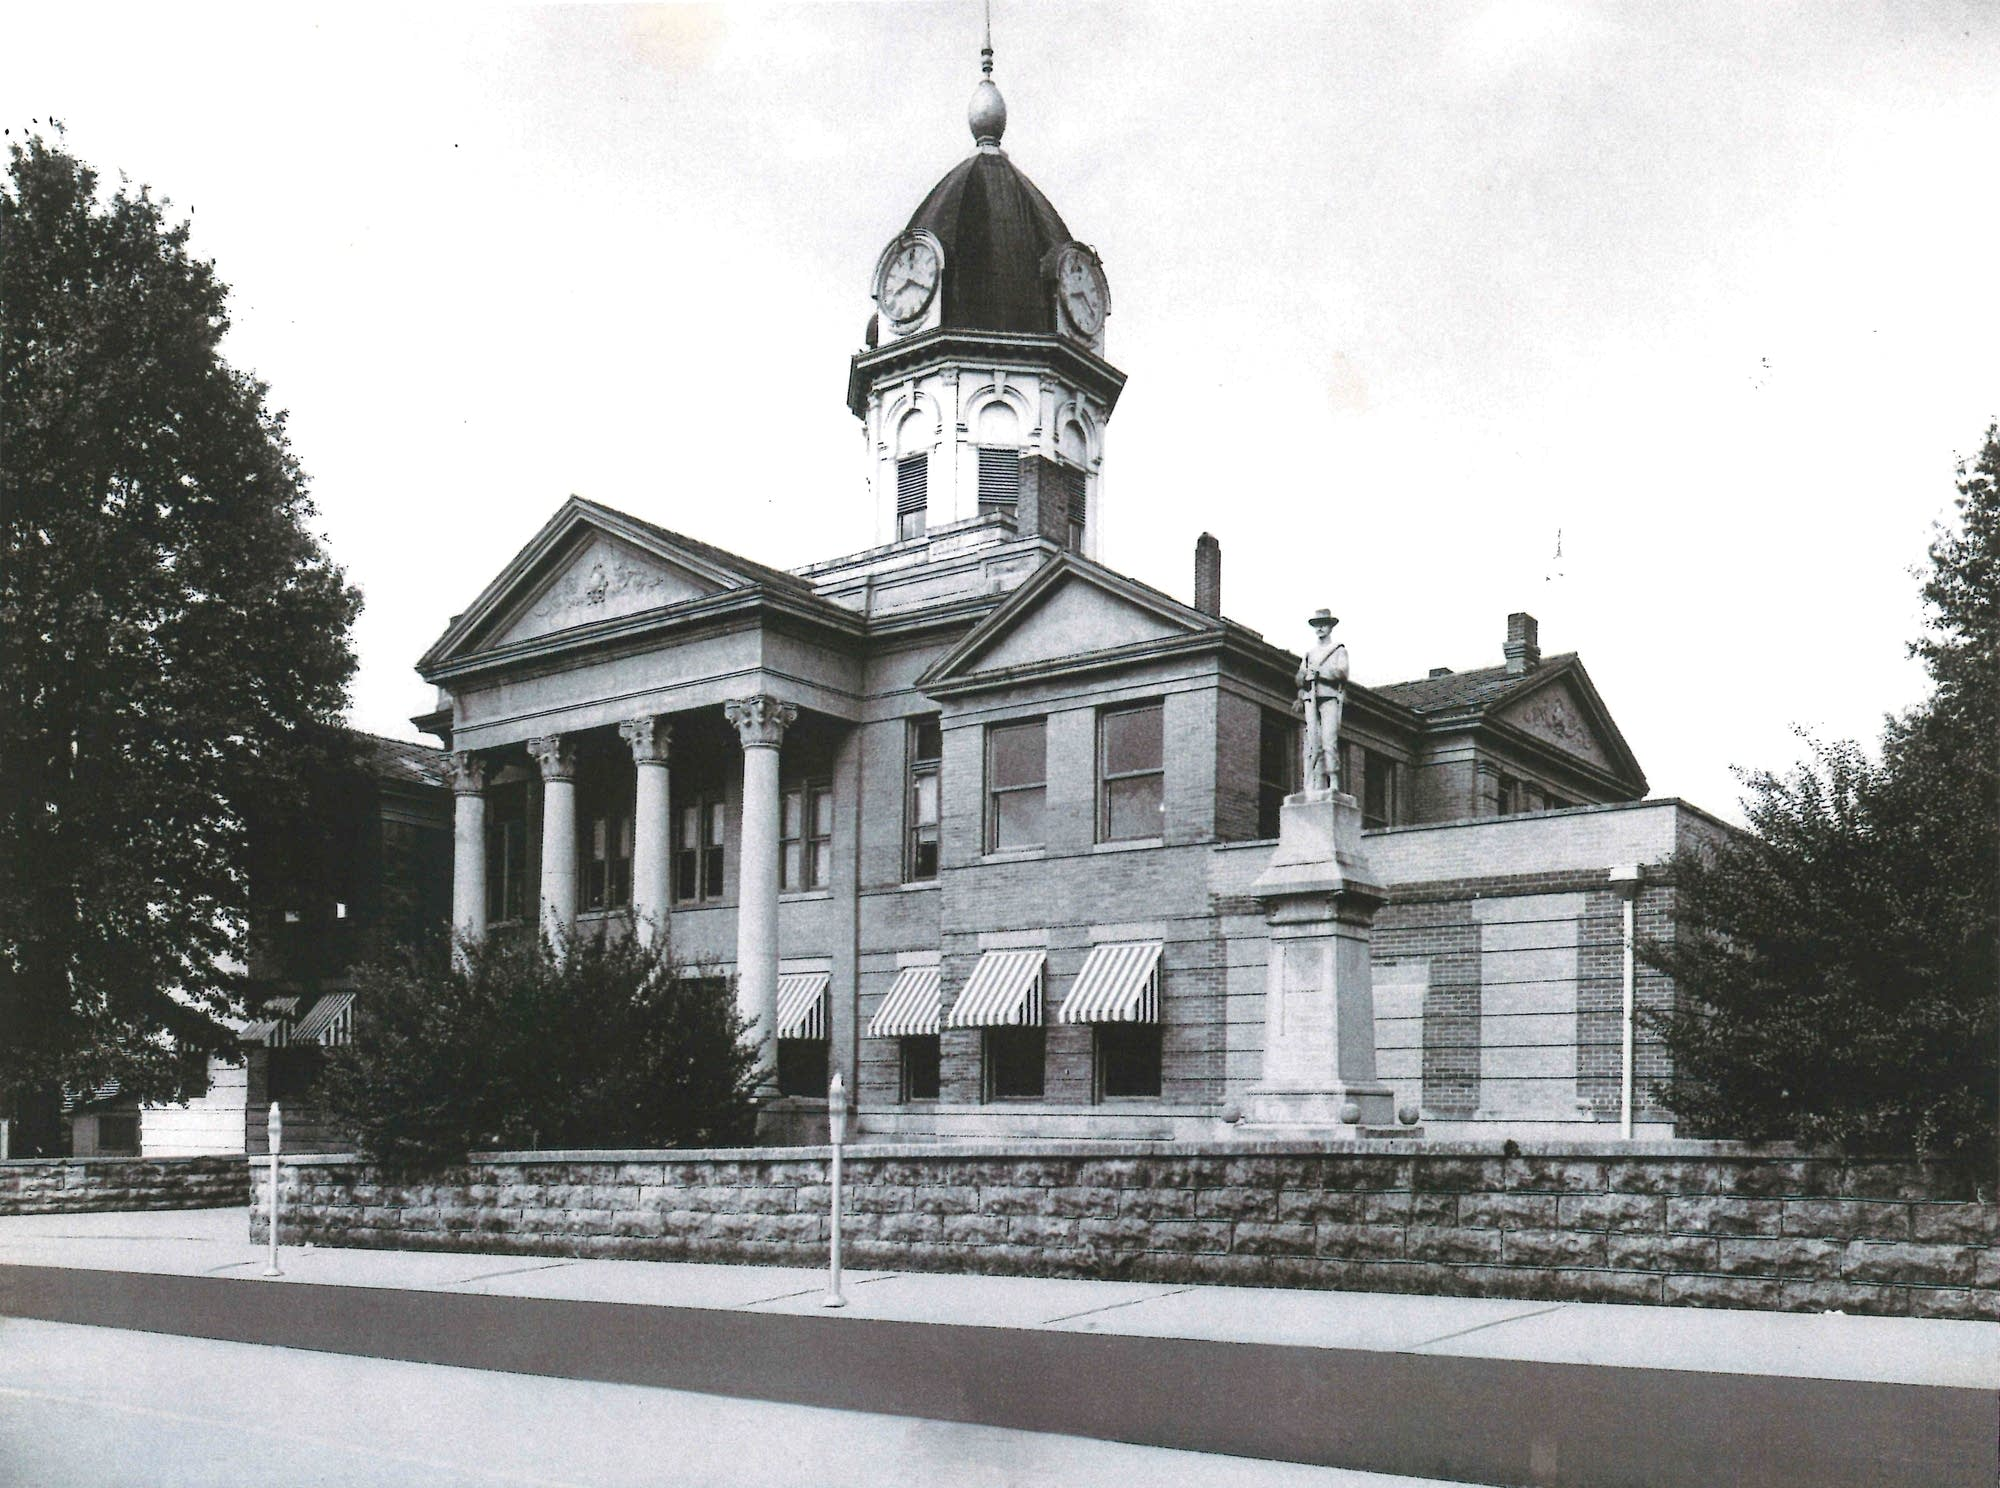 The historic Montgomery County courthouse in Winona.